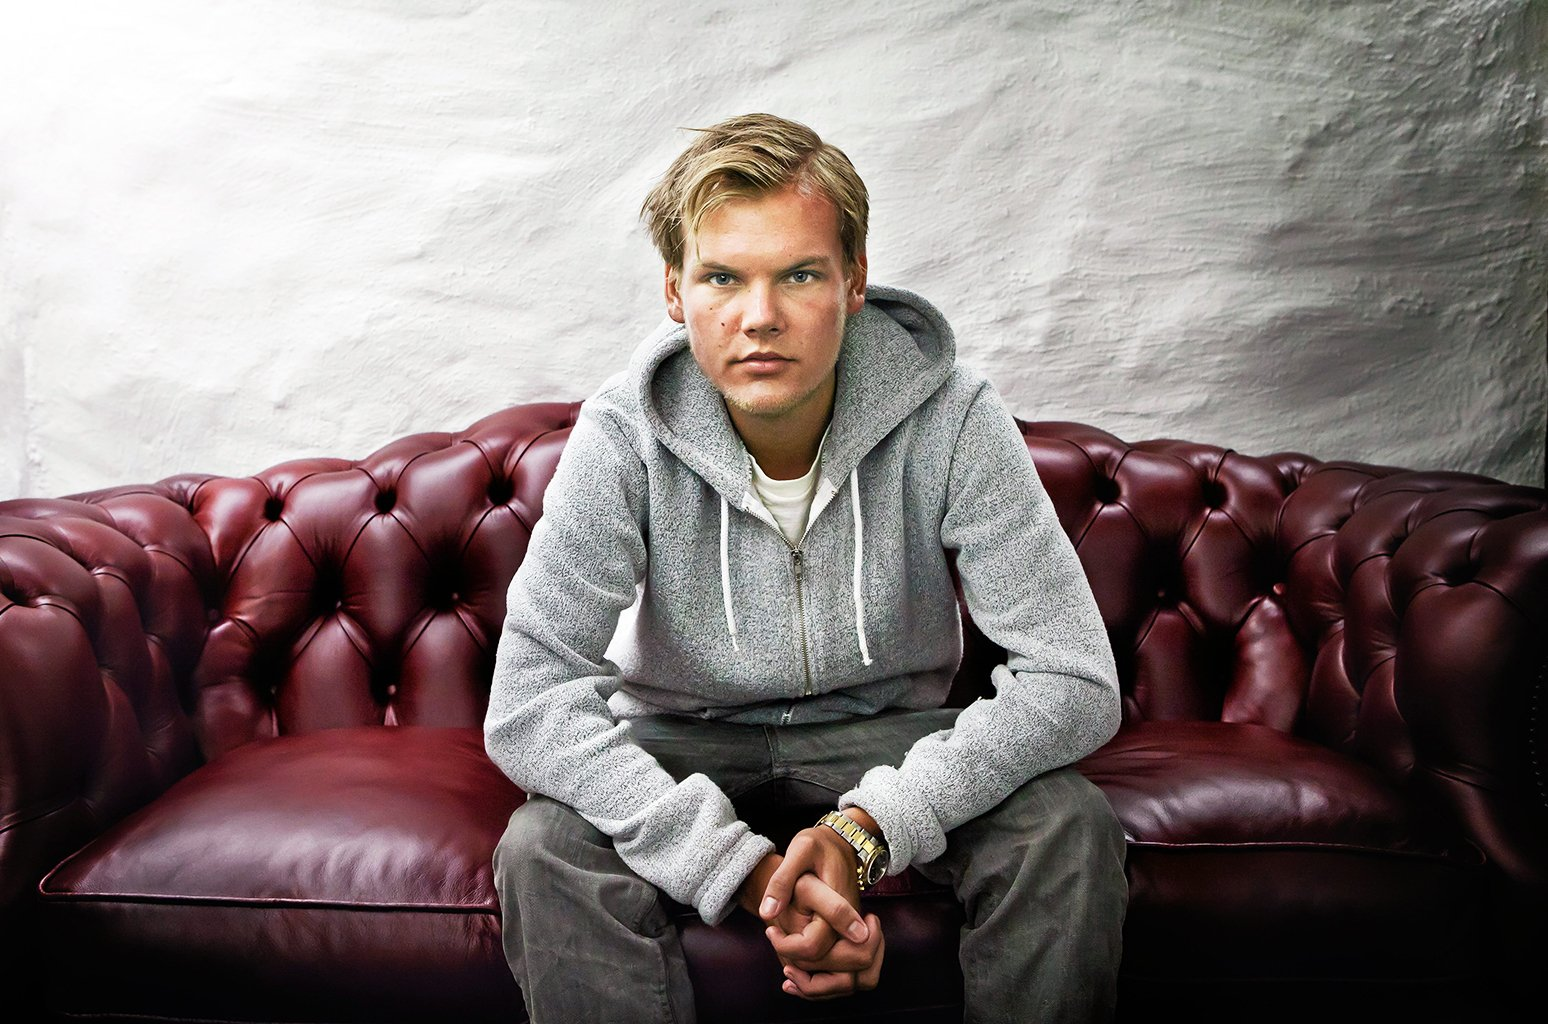 Ten reasons why Avicii's 'Levels' is one of the greatest songs of all time https://t.co/DvLKTFWWvo https://t.co/podNRQ48TC